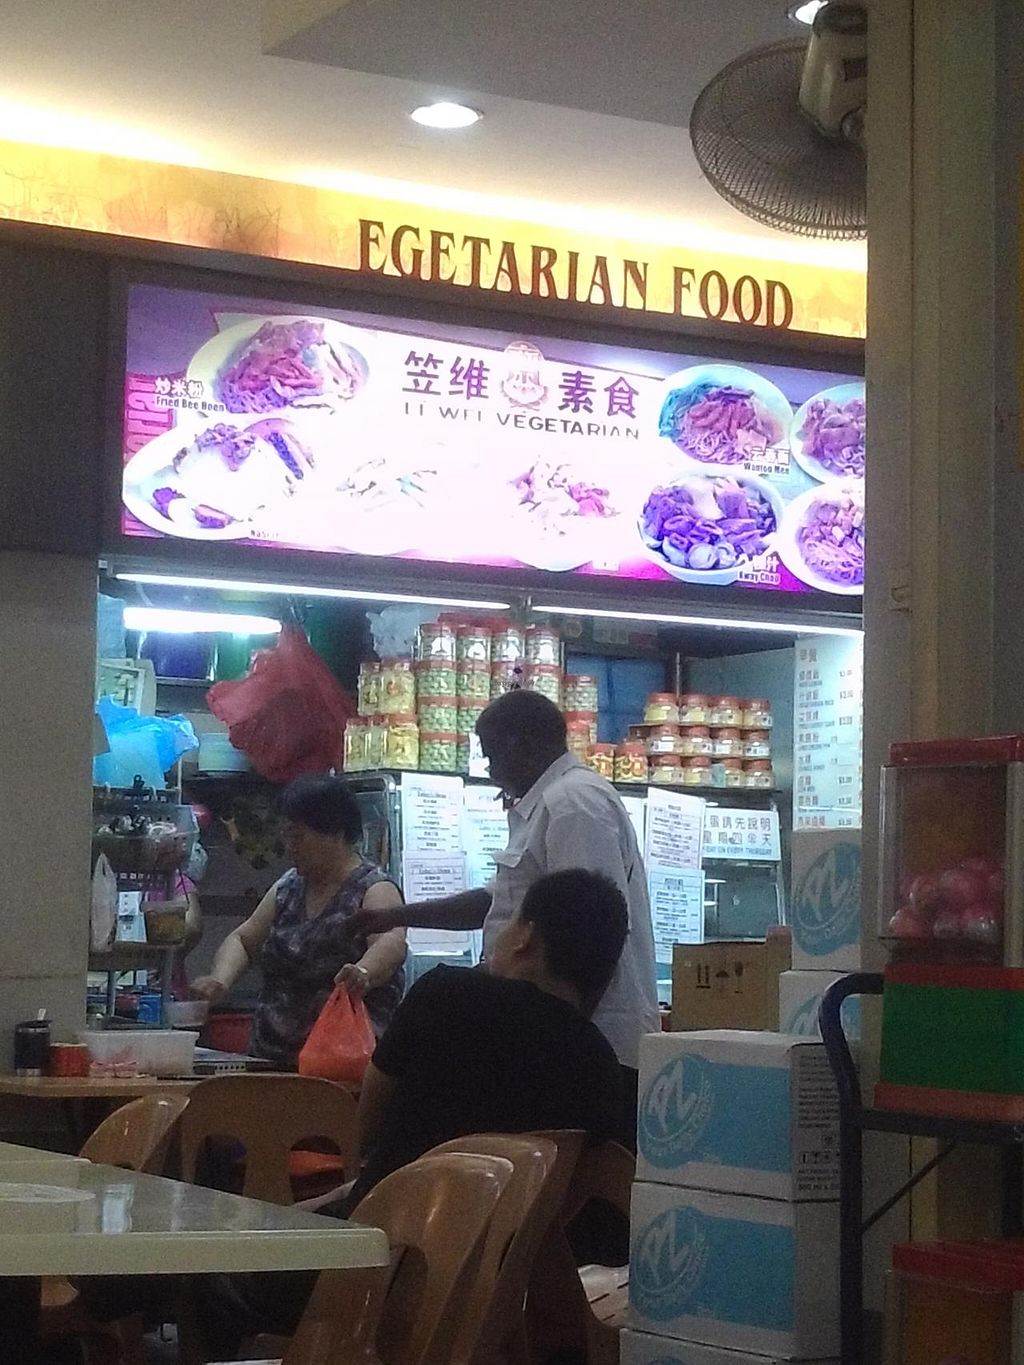 "Photo of Li Wei Food Stall  by <a href=""/members/profile/cksurfz"">cksurfz</a> <br/>笠维vegetarian <br/> January 7, 2014  - <a href='/contact/abuse/image/9693/62023'>Report</a>"